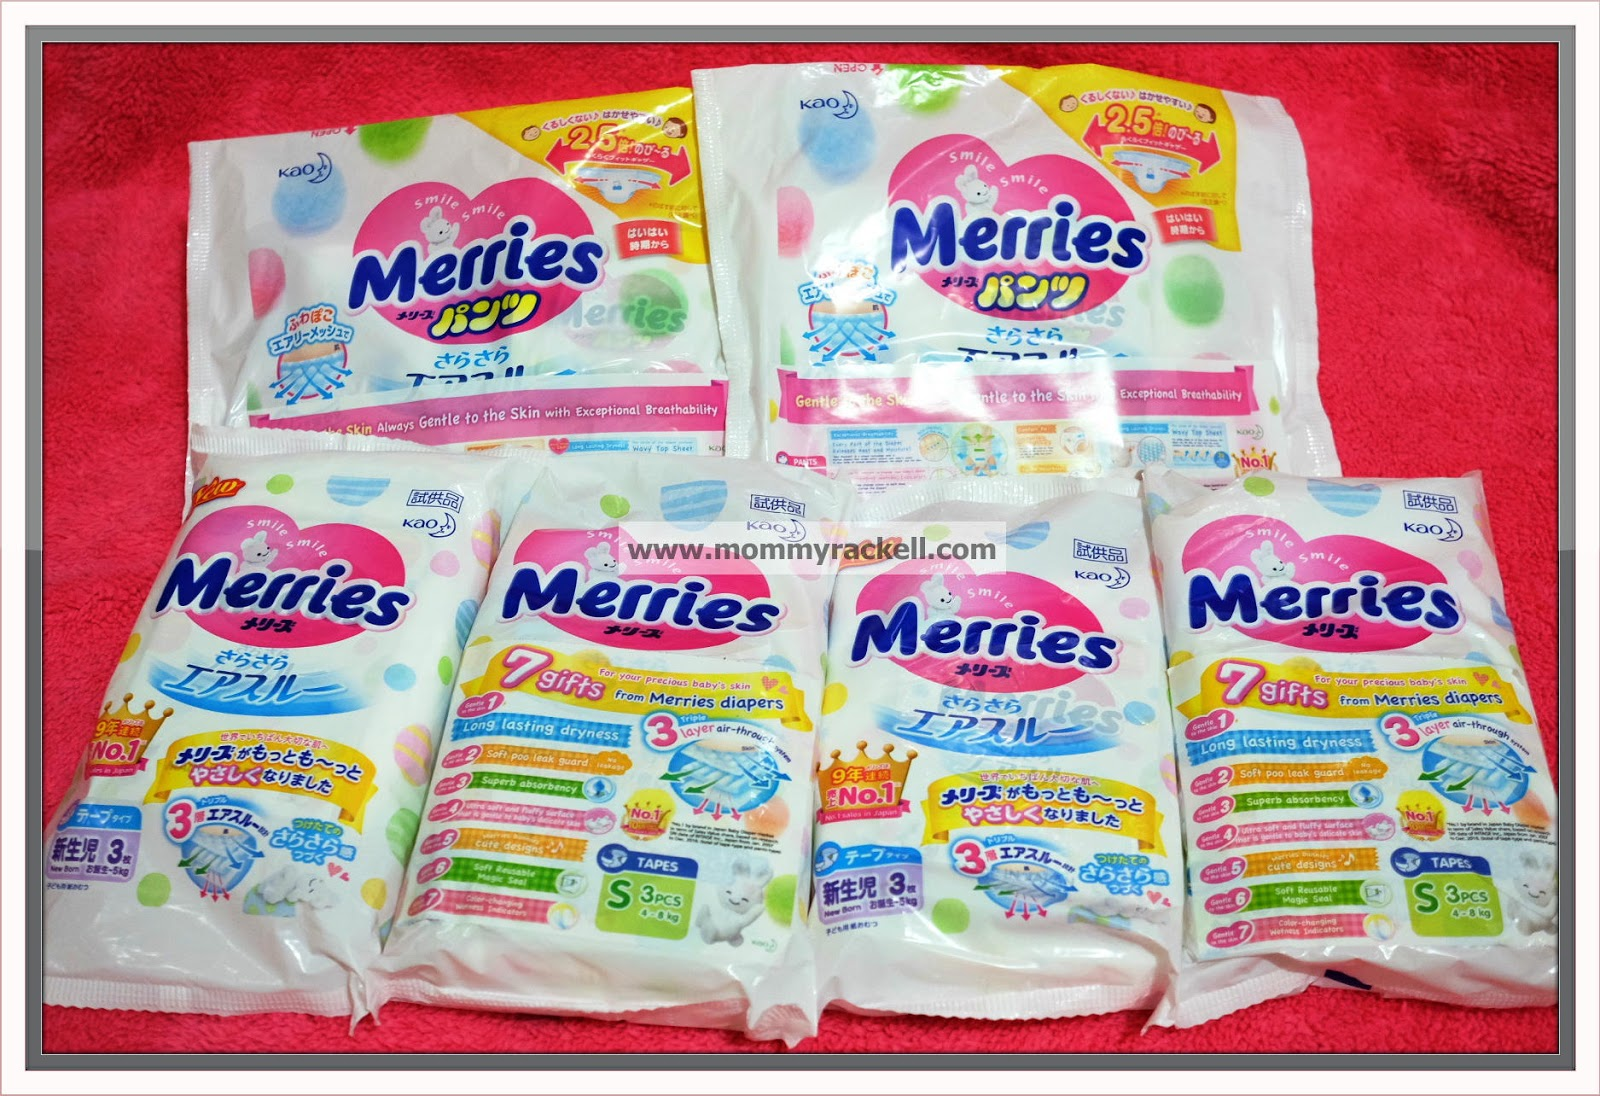 Product Review Wear A Smile With Merries My Little World By Mommy Baby Diapers New Born 24 S Diaper Is So Gentle To The Babies Sensitive Skin Like Daughter Material Soft From Inside And Out While Quickly Absorbing Urine